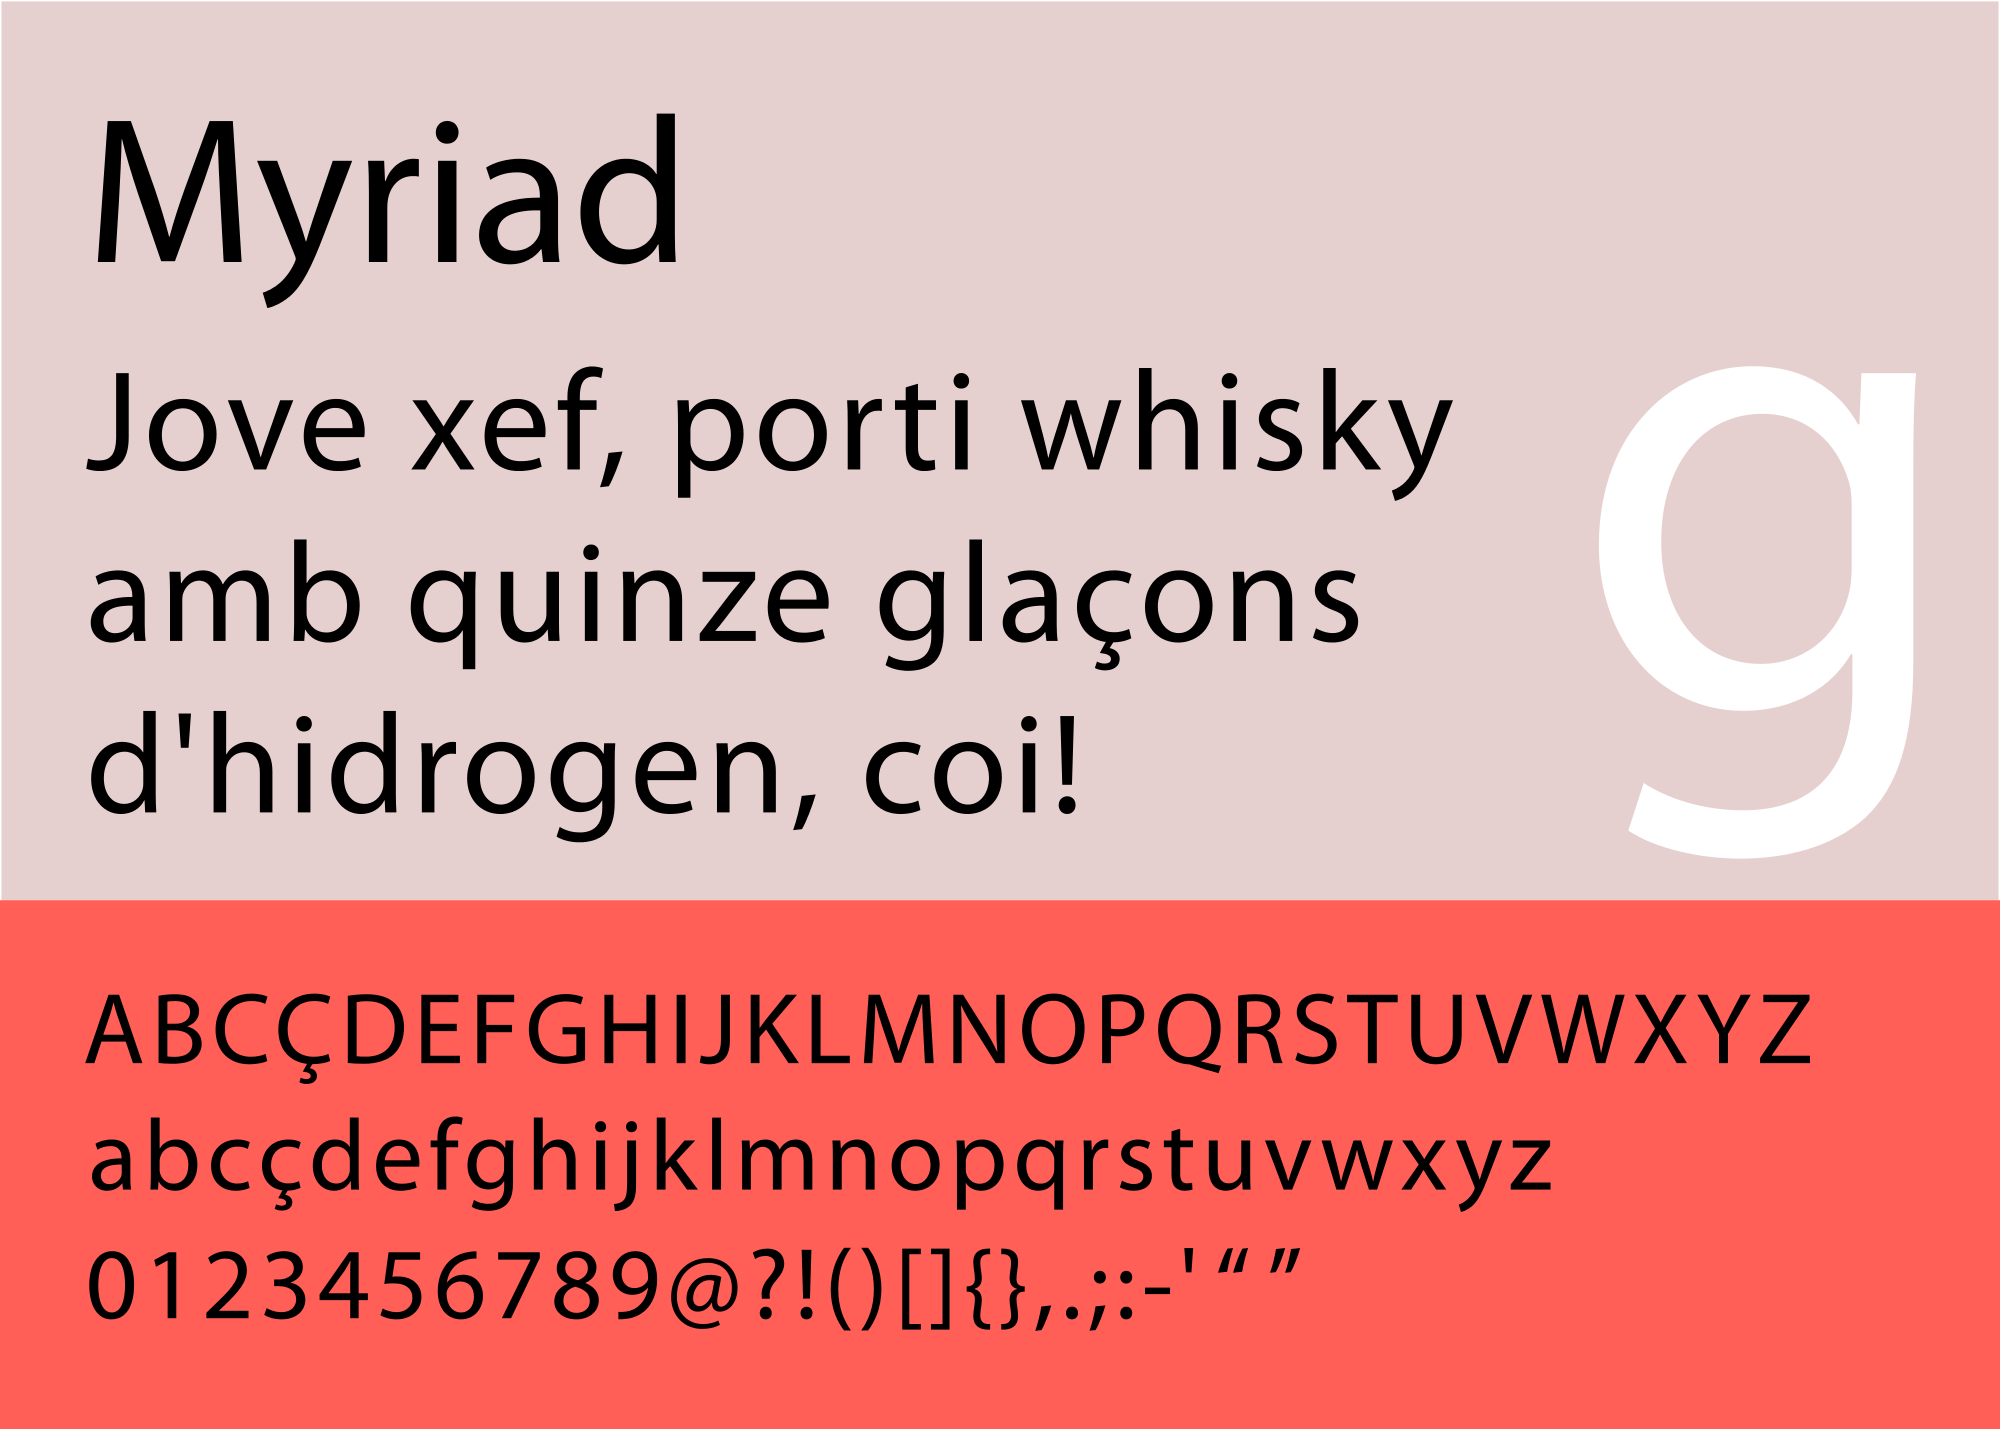 25 most used typefaces in advertising: Myriad